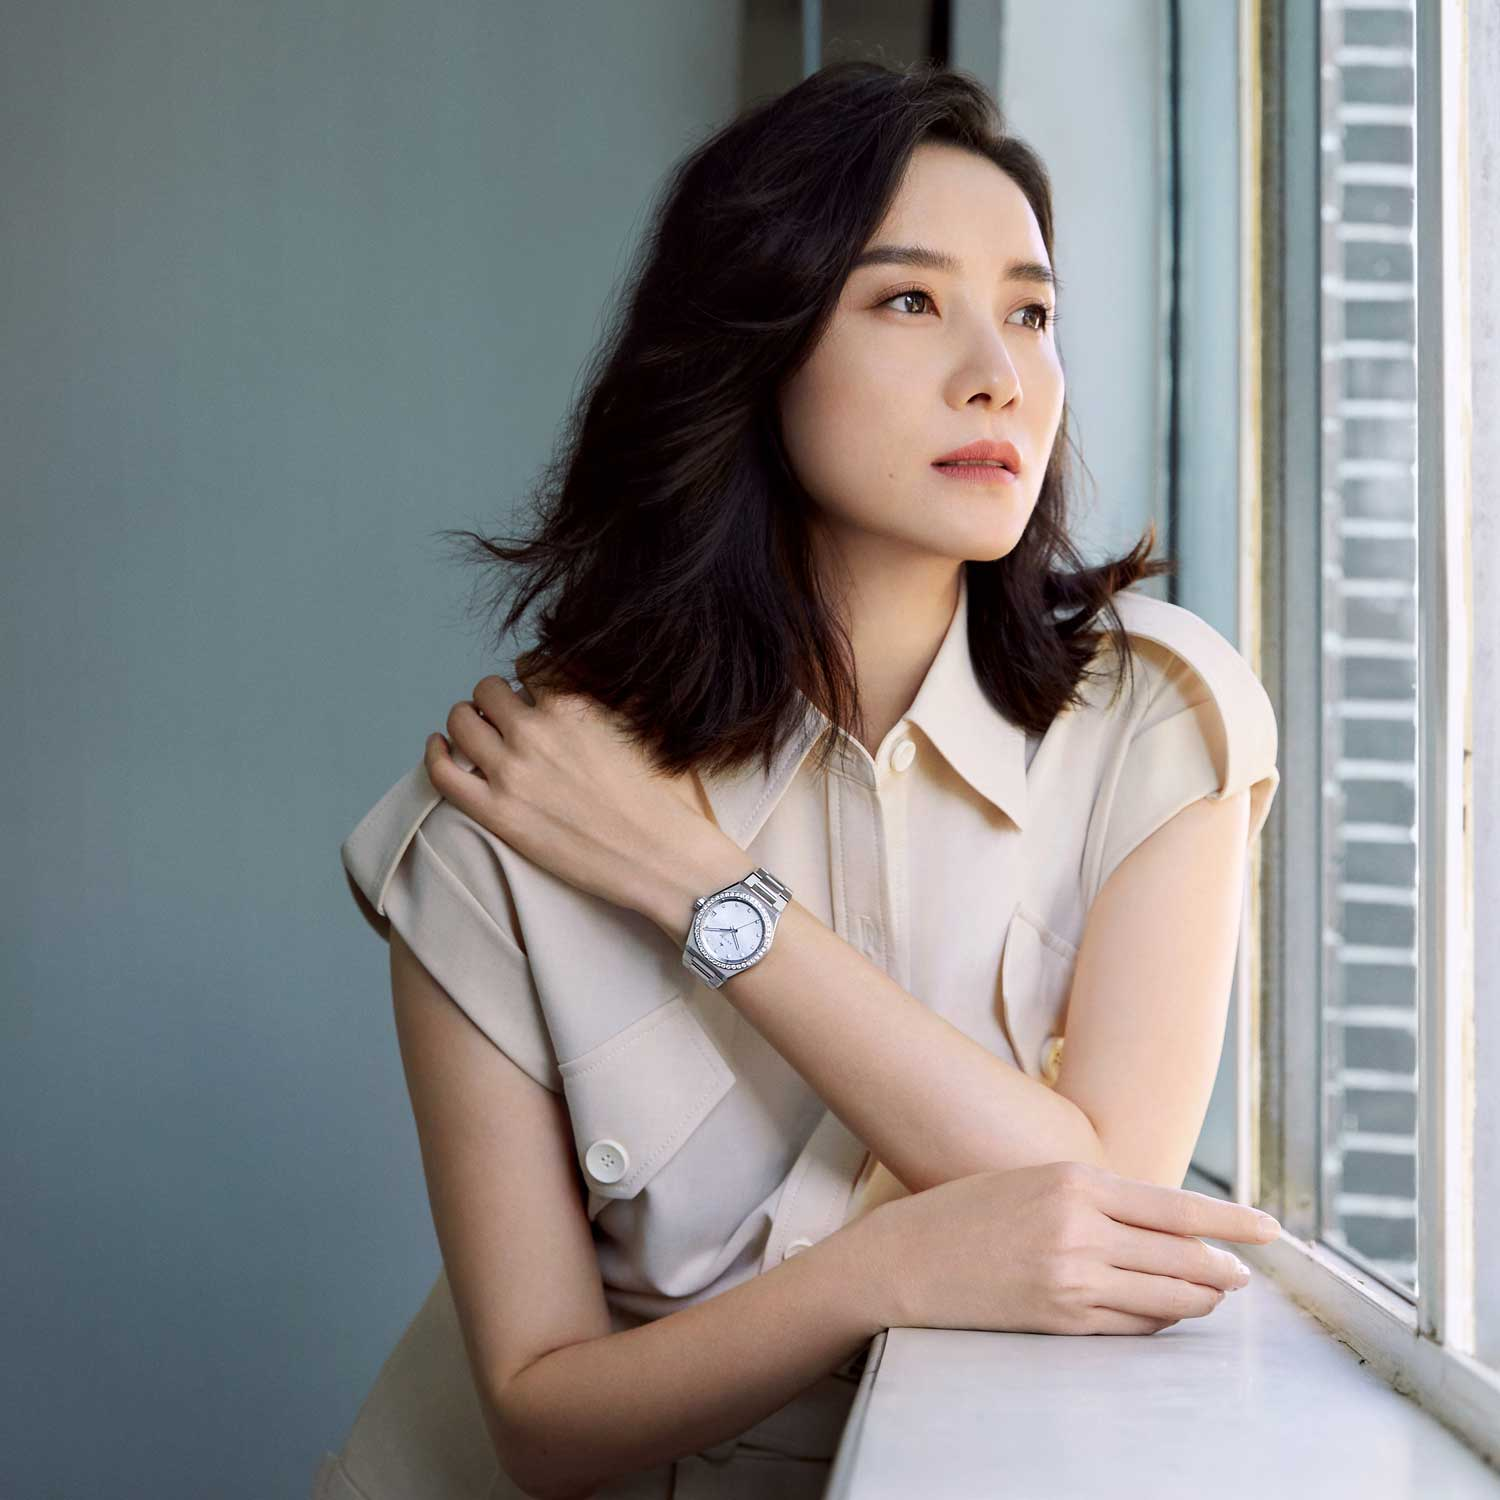 Actor, Song Jia, Ambassadors from the new DREAMHERS global campaign represent accomplished women from around the world for the launch of Zenith's first exclusive ladies collection, the DEFY Midnight.